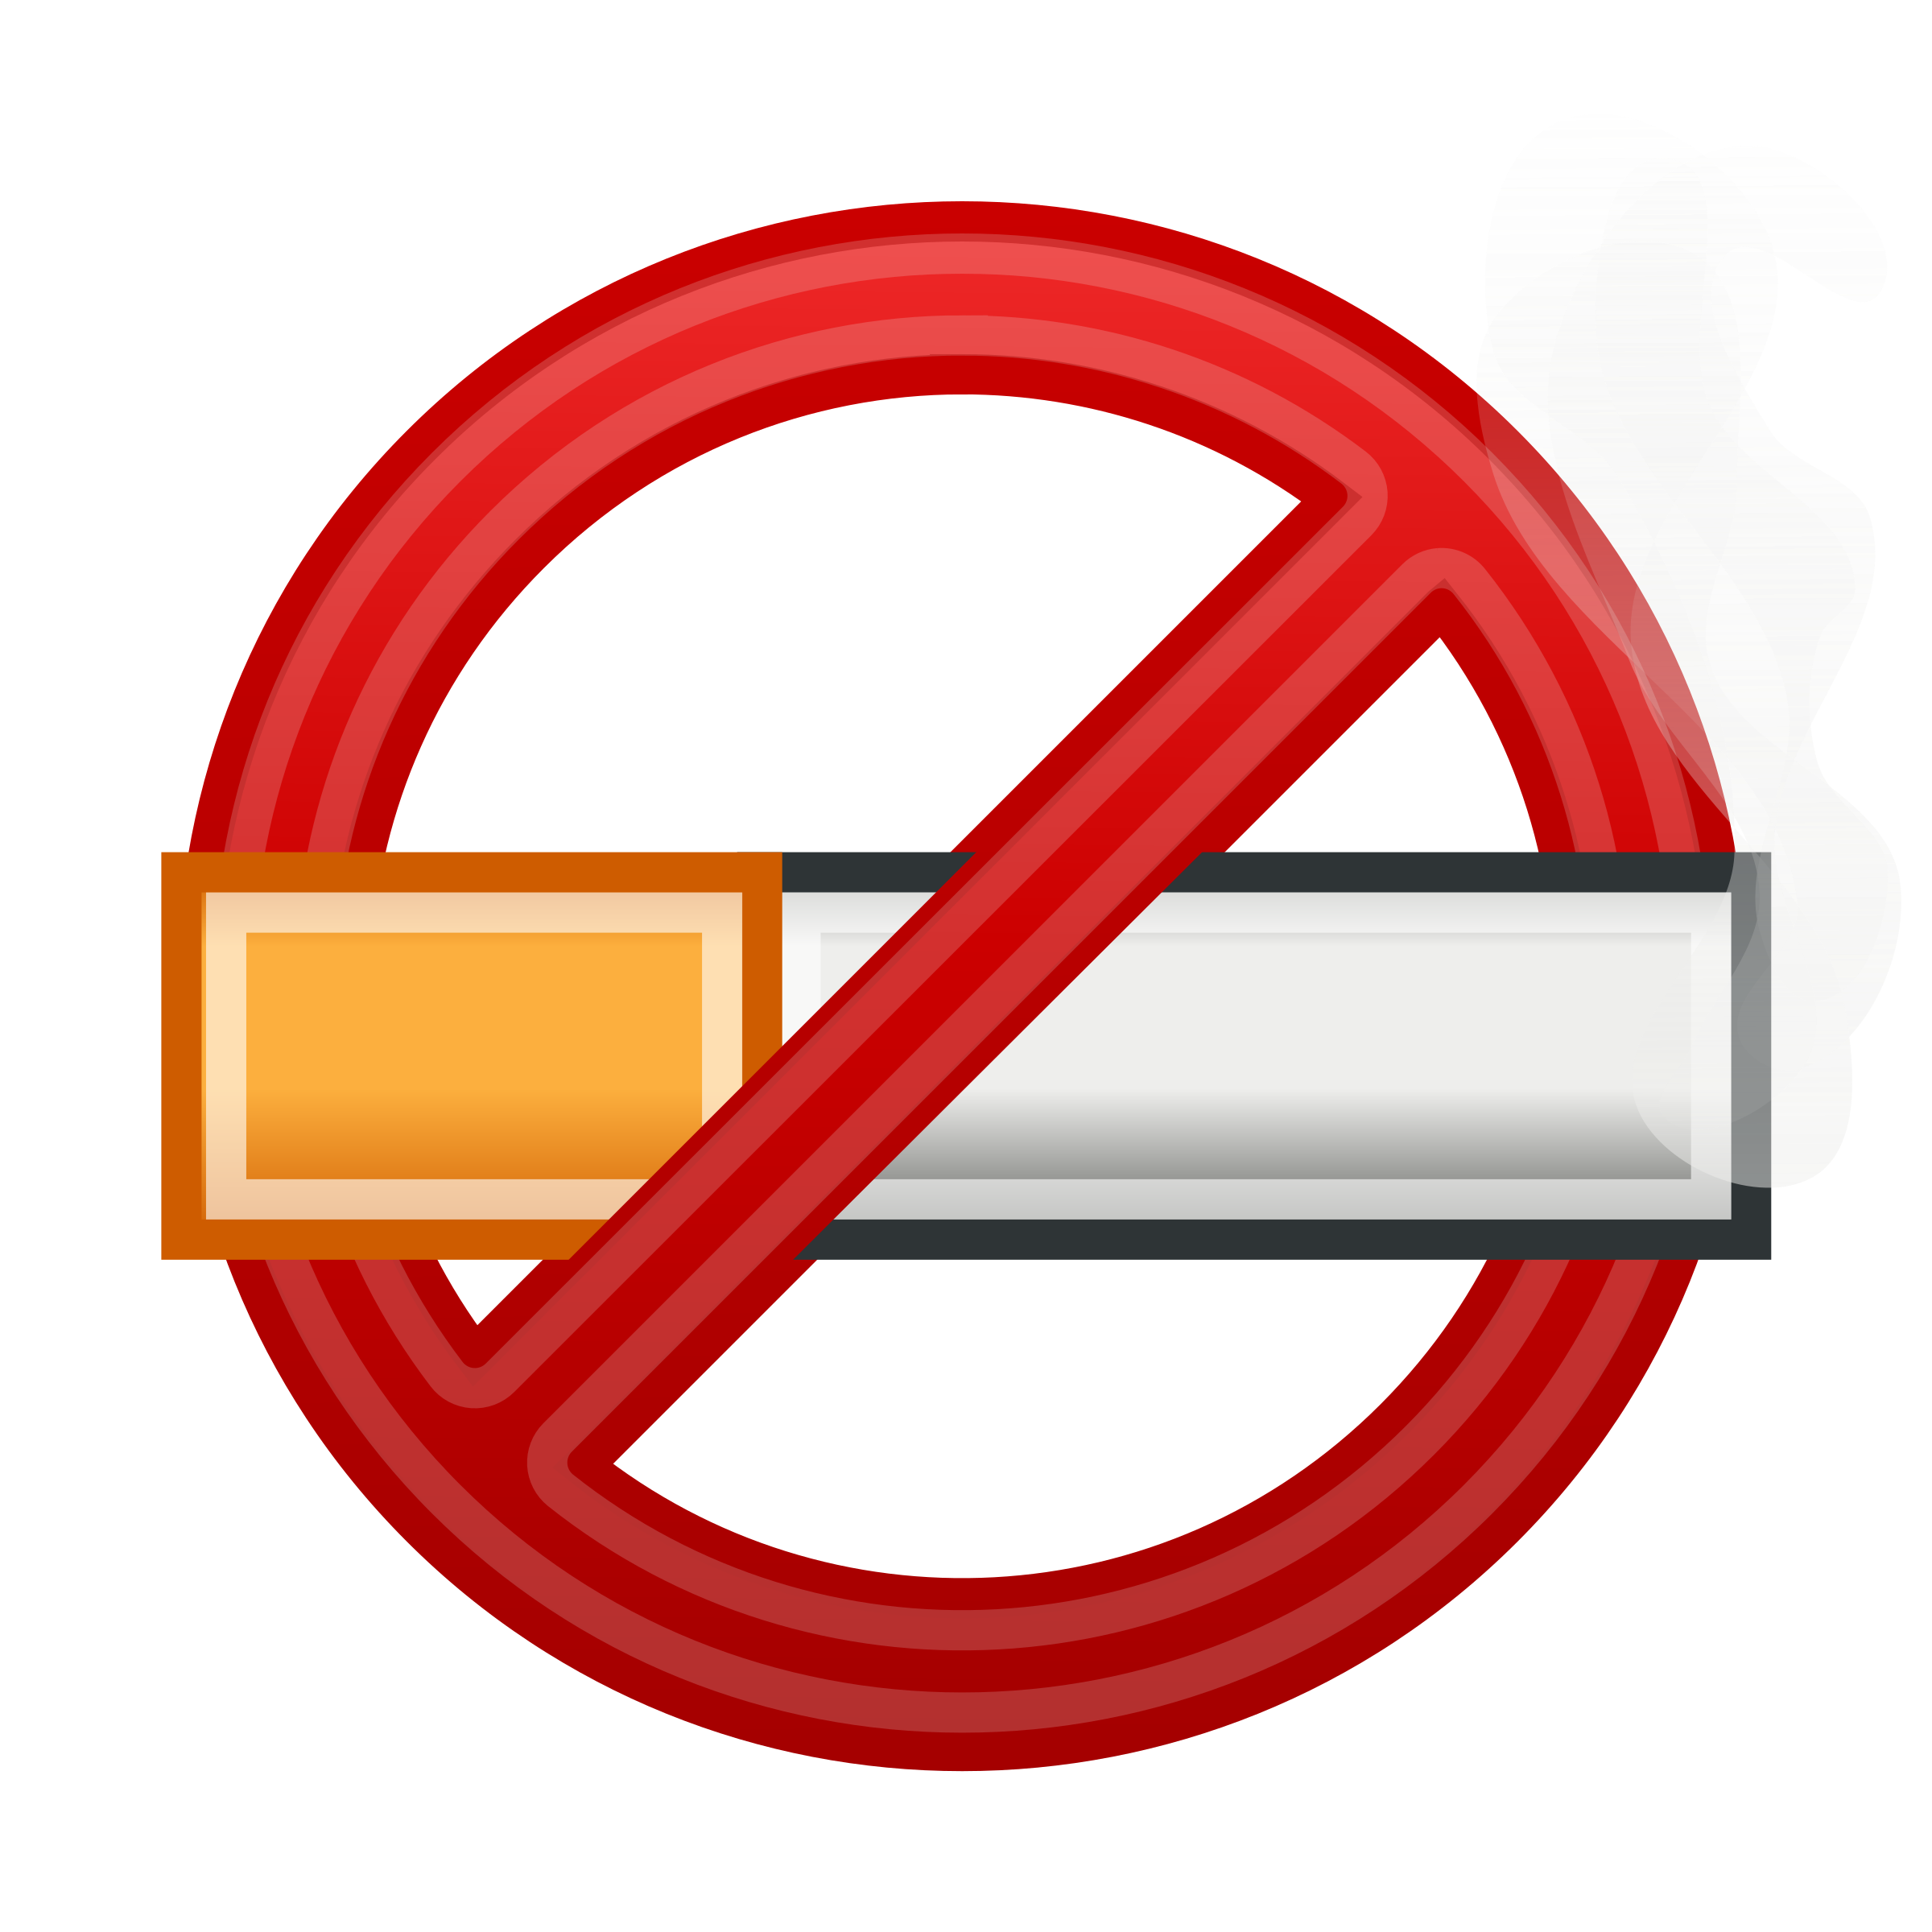 No smoking icon by jhnri4